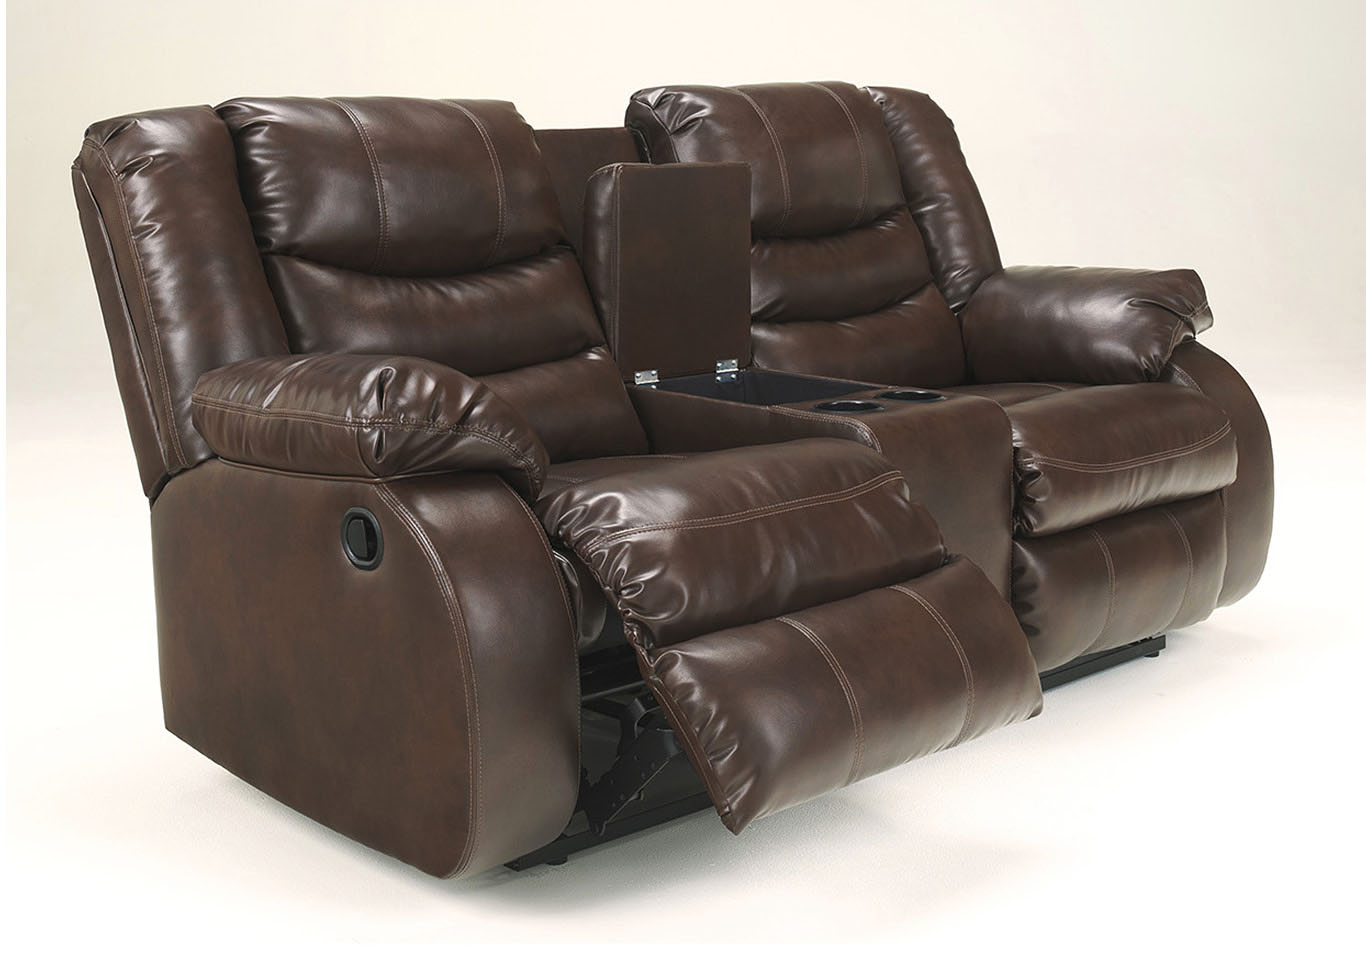 Langlois Furniture Muskegon Mi Linebacker Durablend Espresso Double Reclining Loveseat W Console